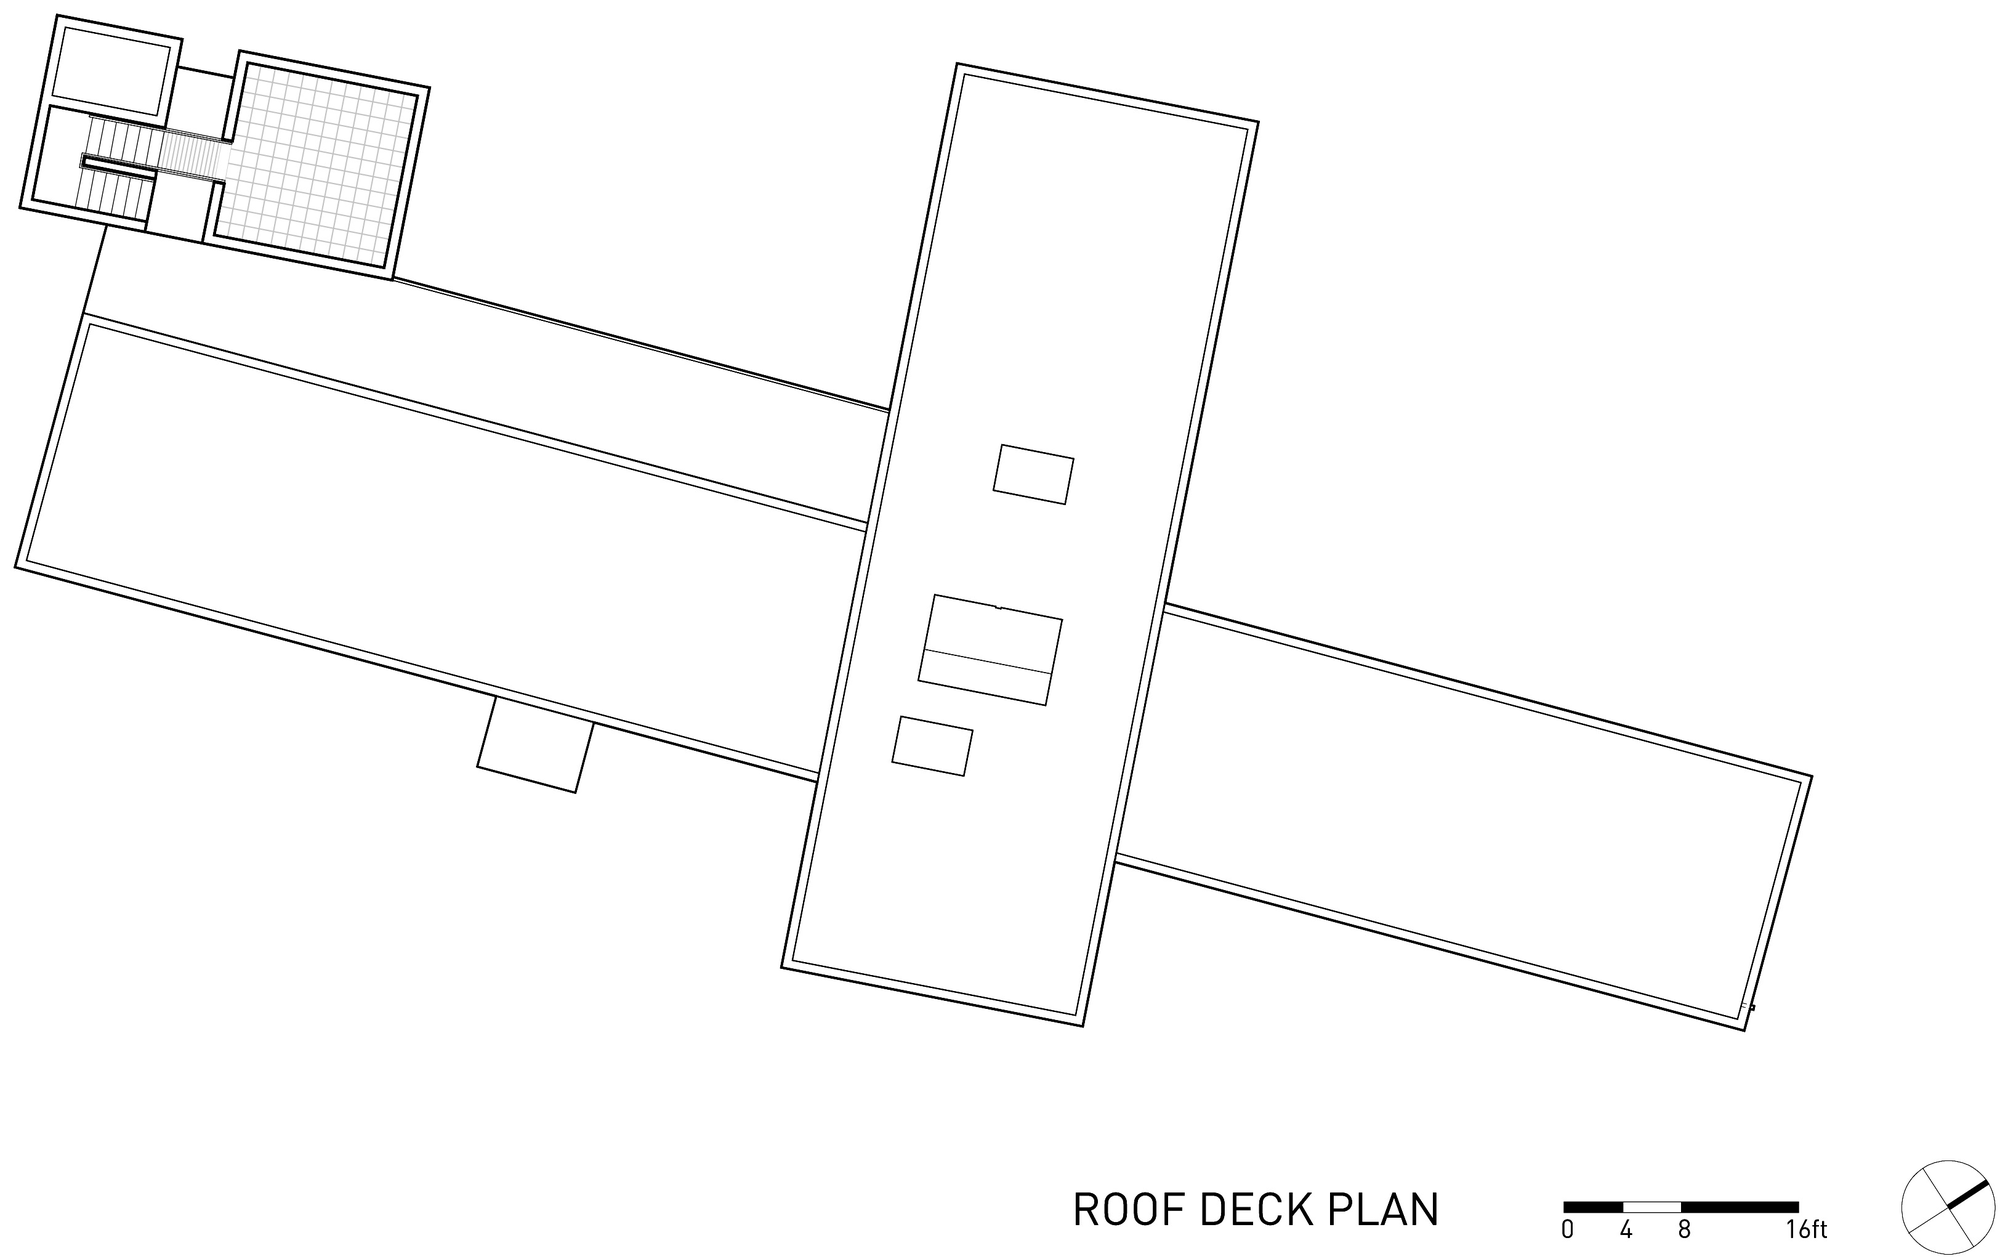 533cdee9c07a80fef3000065_low-rise-house-spiegel-aihara-workshop_lowrise_roof_copia